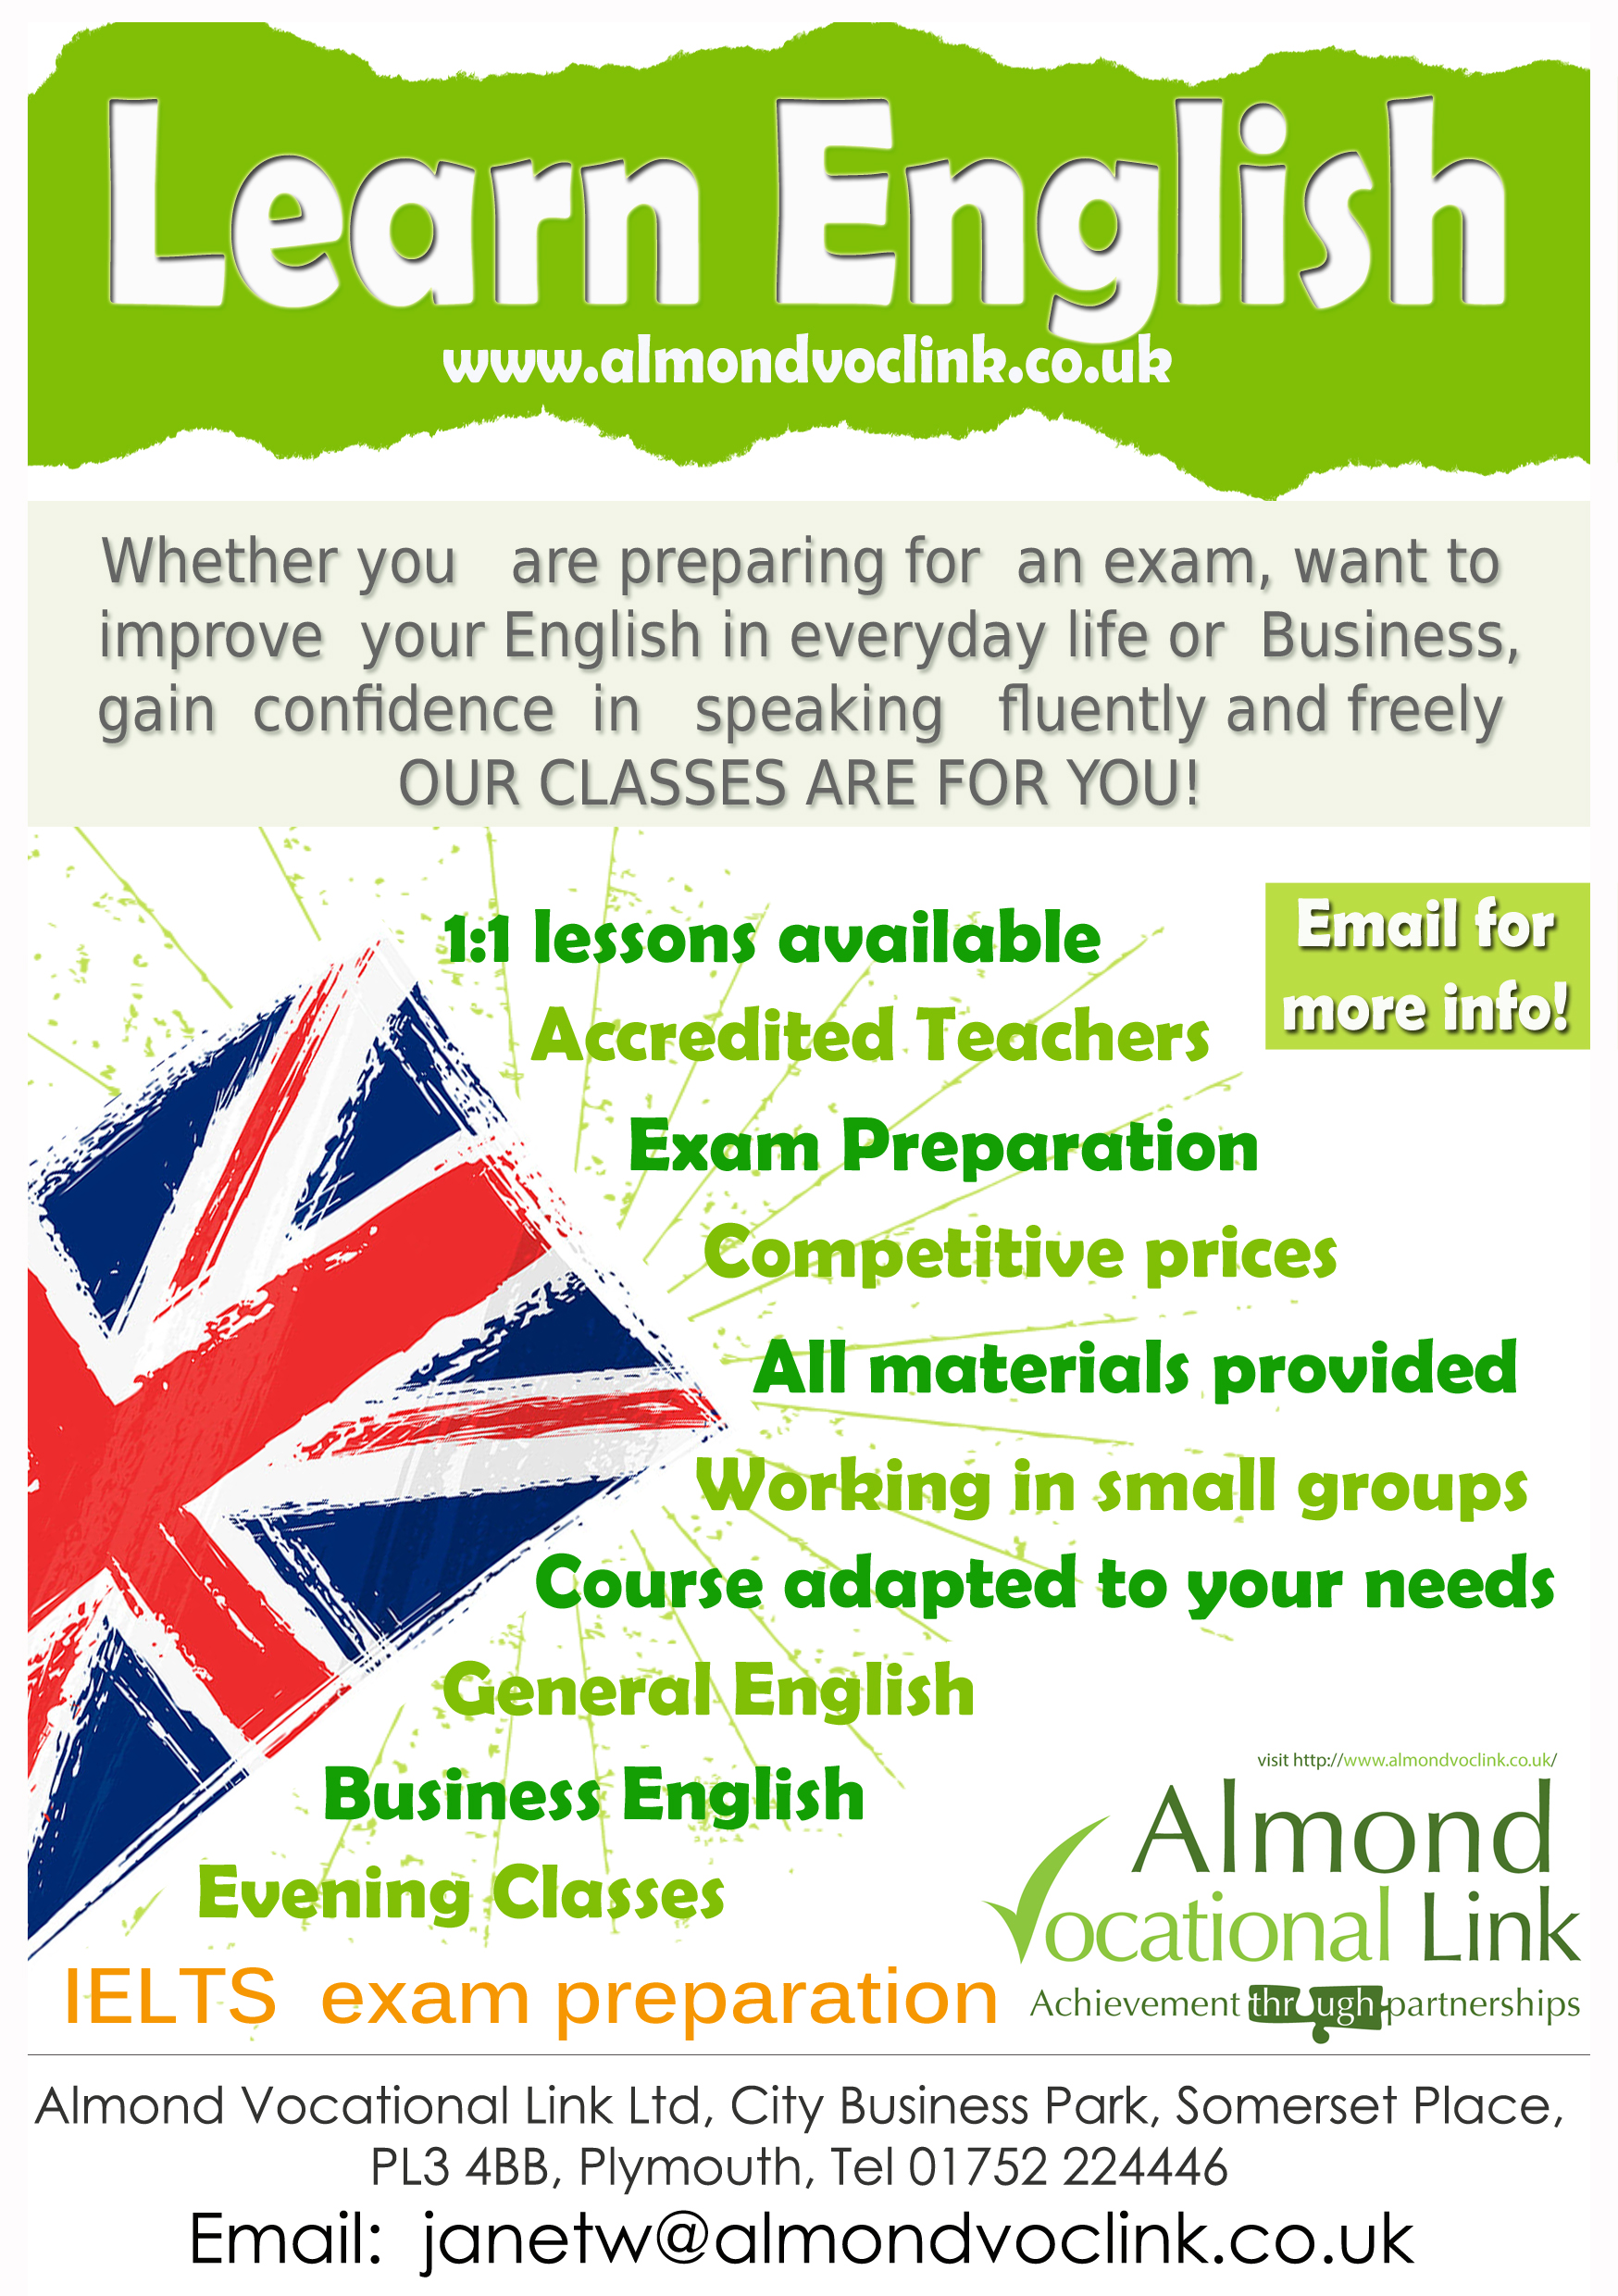 English Language Training Poster Almond Vocational Link Ltd